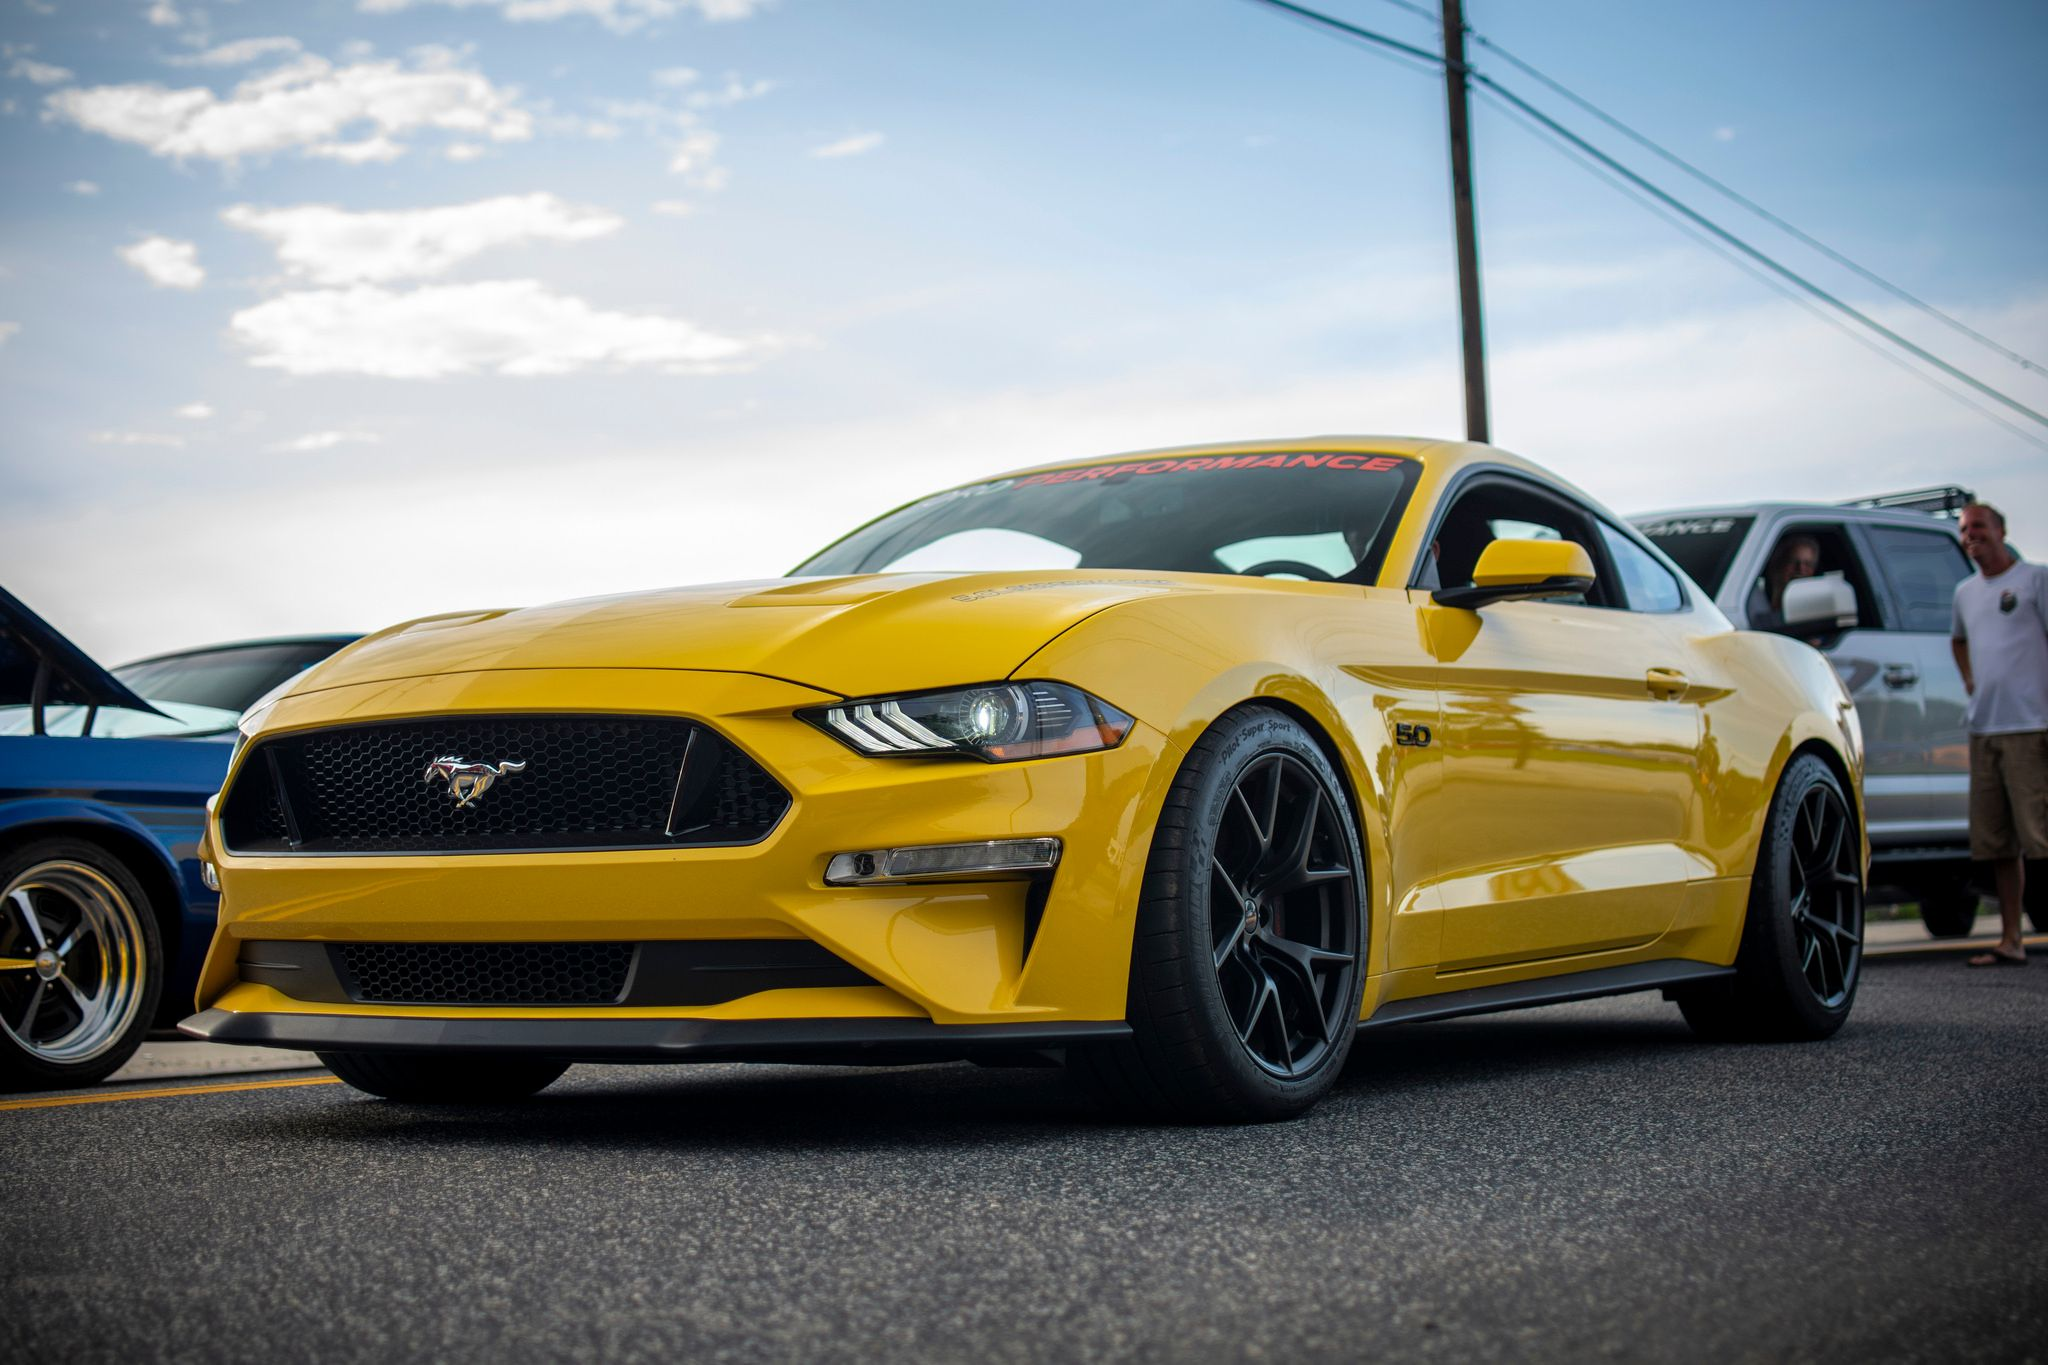 Ford Performance's 2018 Mustang looks good in any light